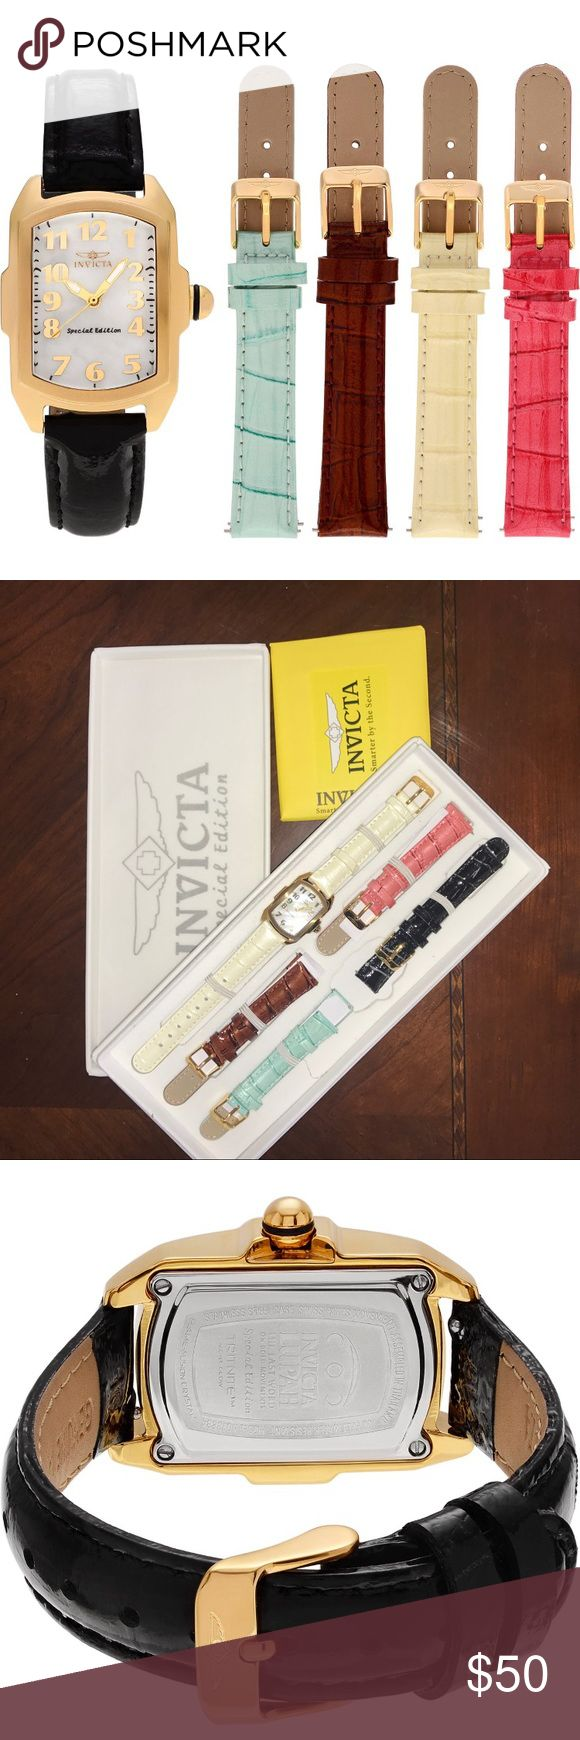 Brand new watch set Brand stinking new Invicta special edition watch set!  Gold face watch with with FIVE different colored watch bands: White/cream Brown Pink Turquoise & Black  Never worn! Perfect holiday gift 🎁 Invicta Accessories Watches